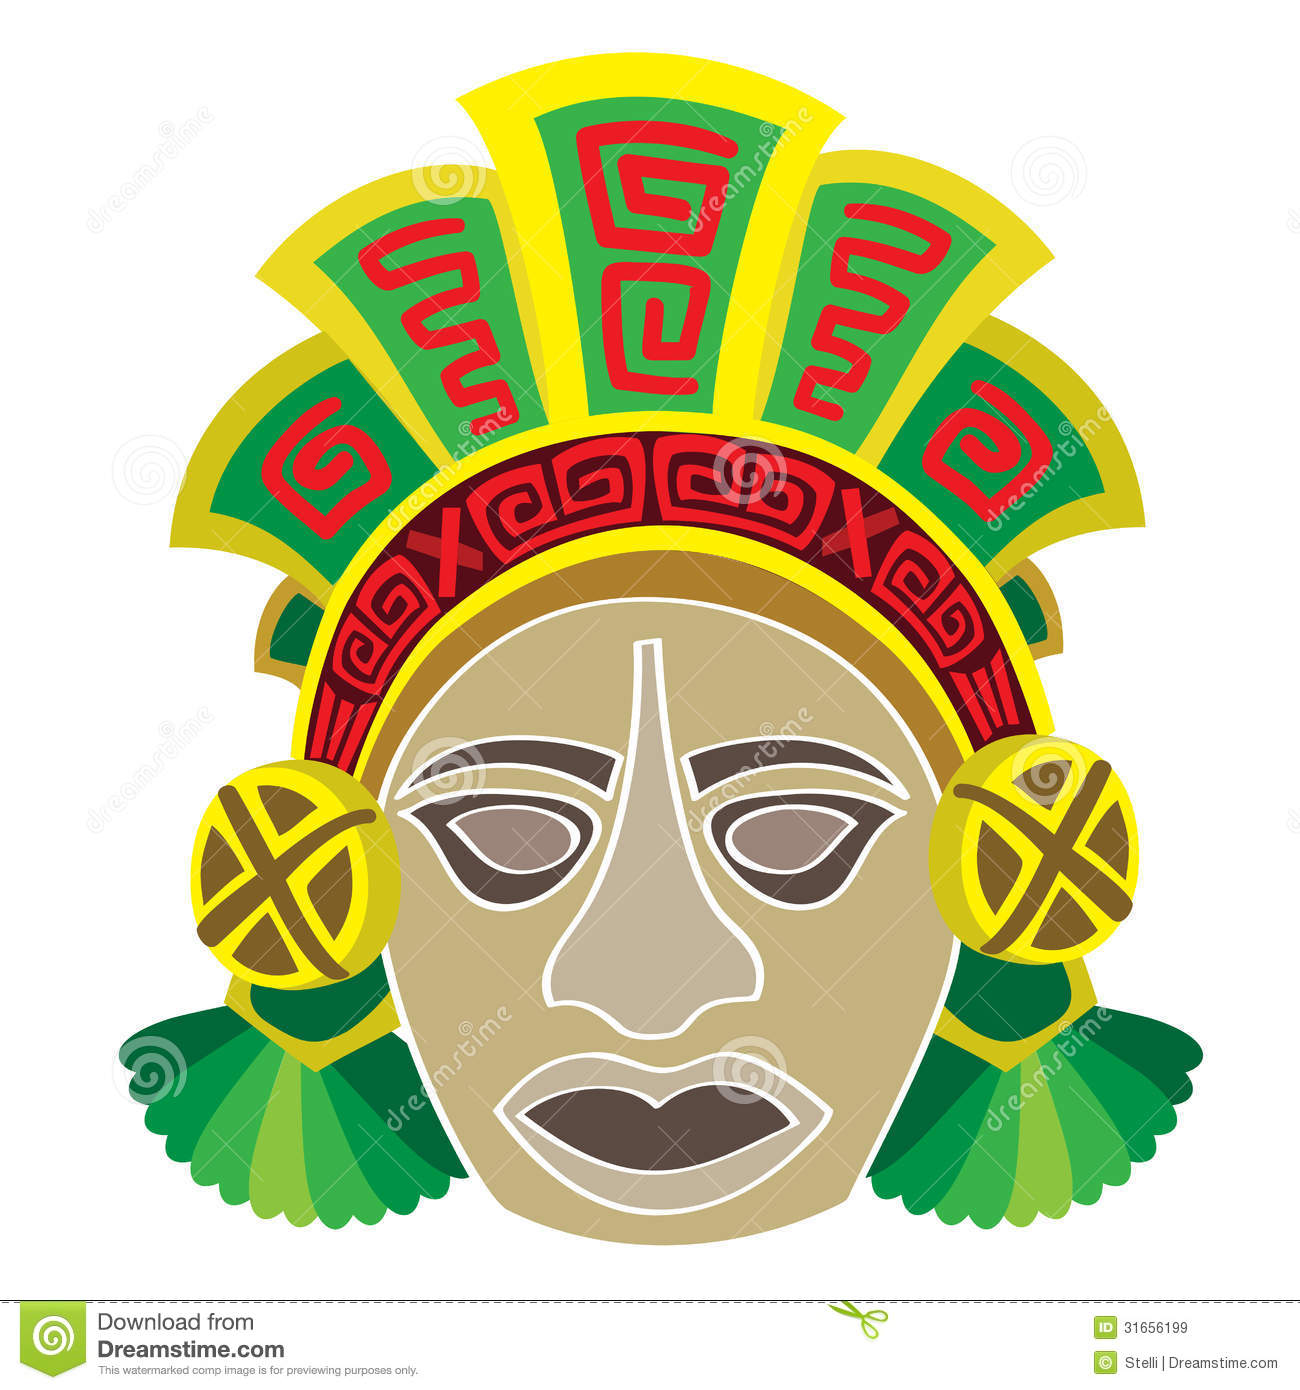 aztec mask template - the mayans mask new calendar template site